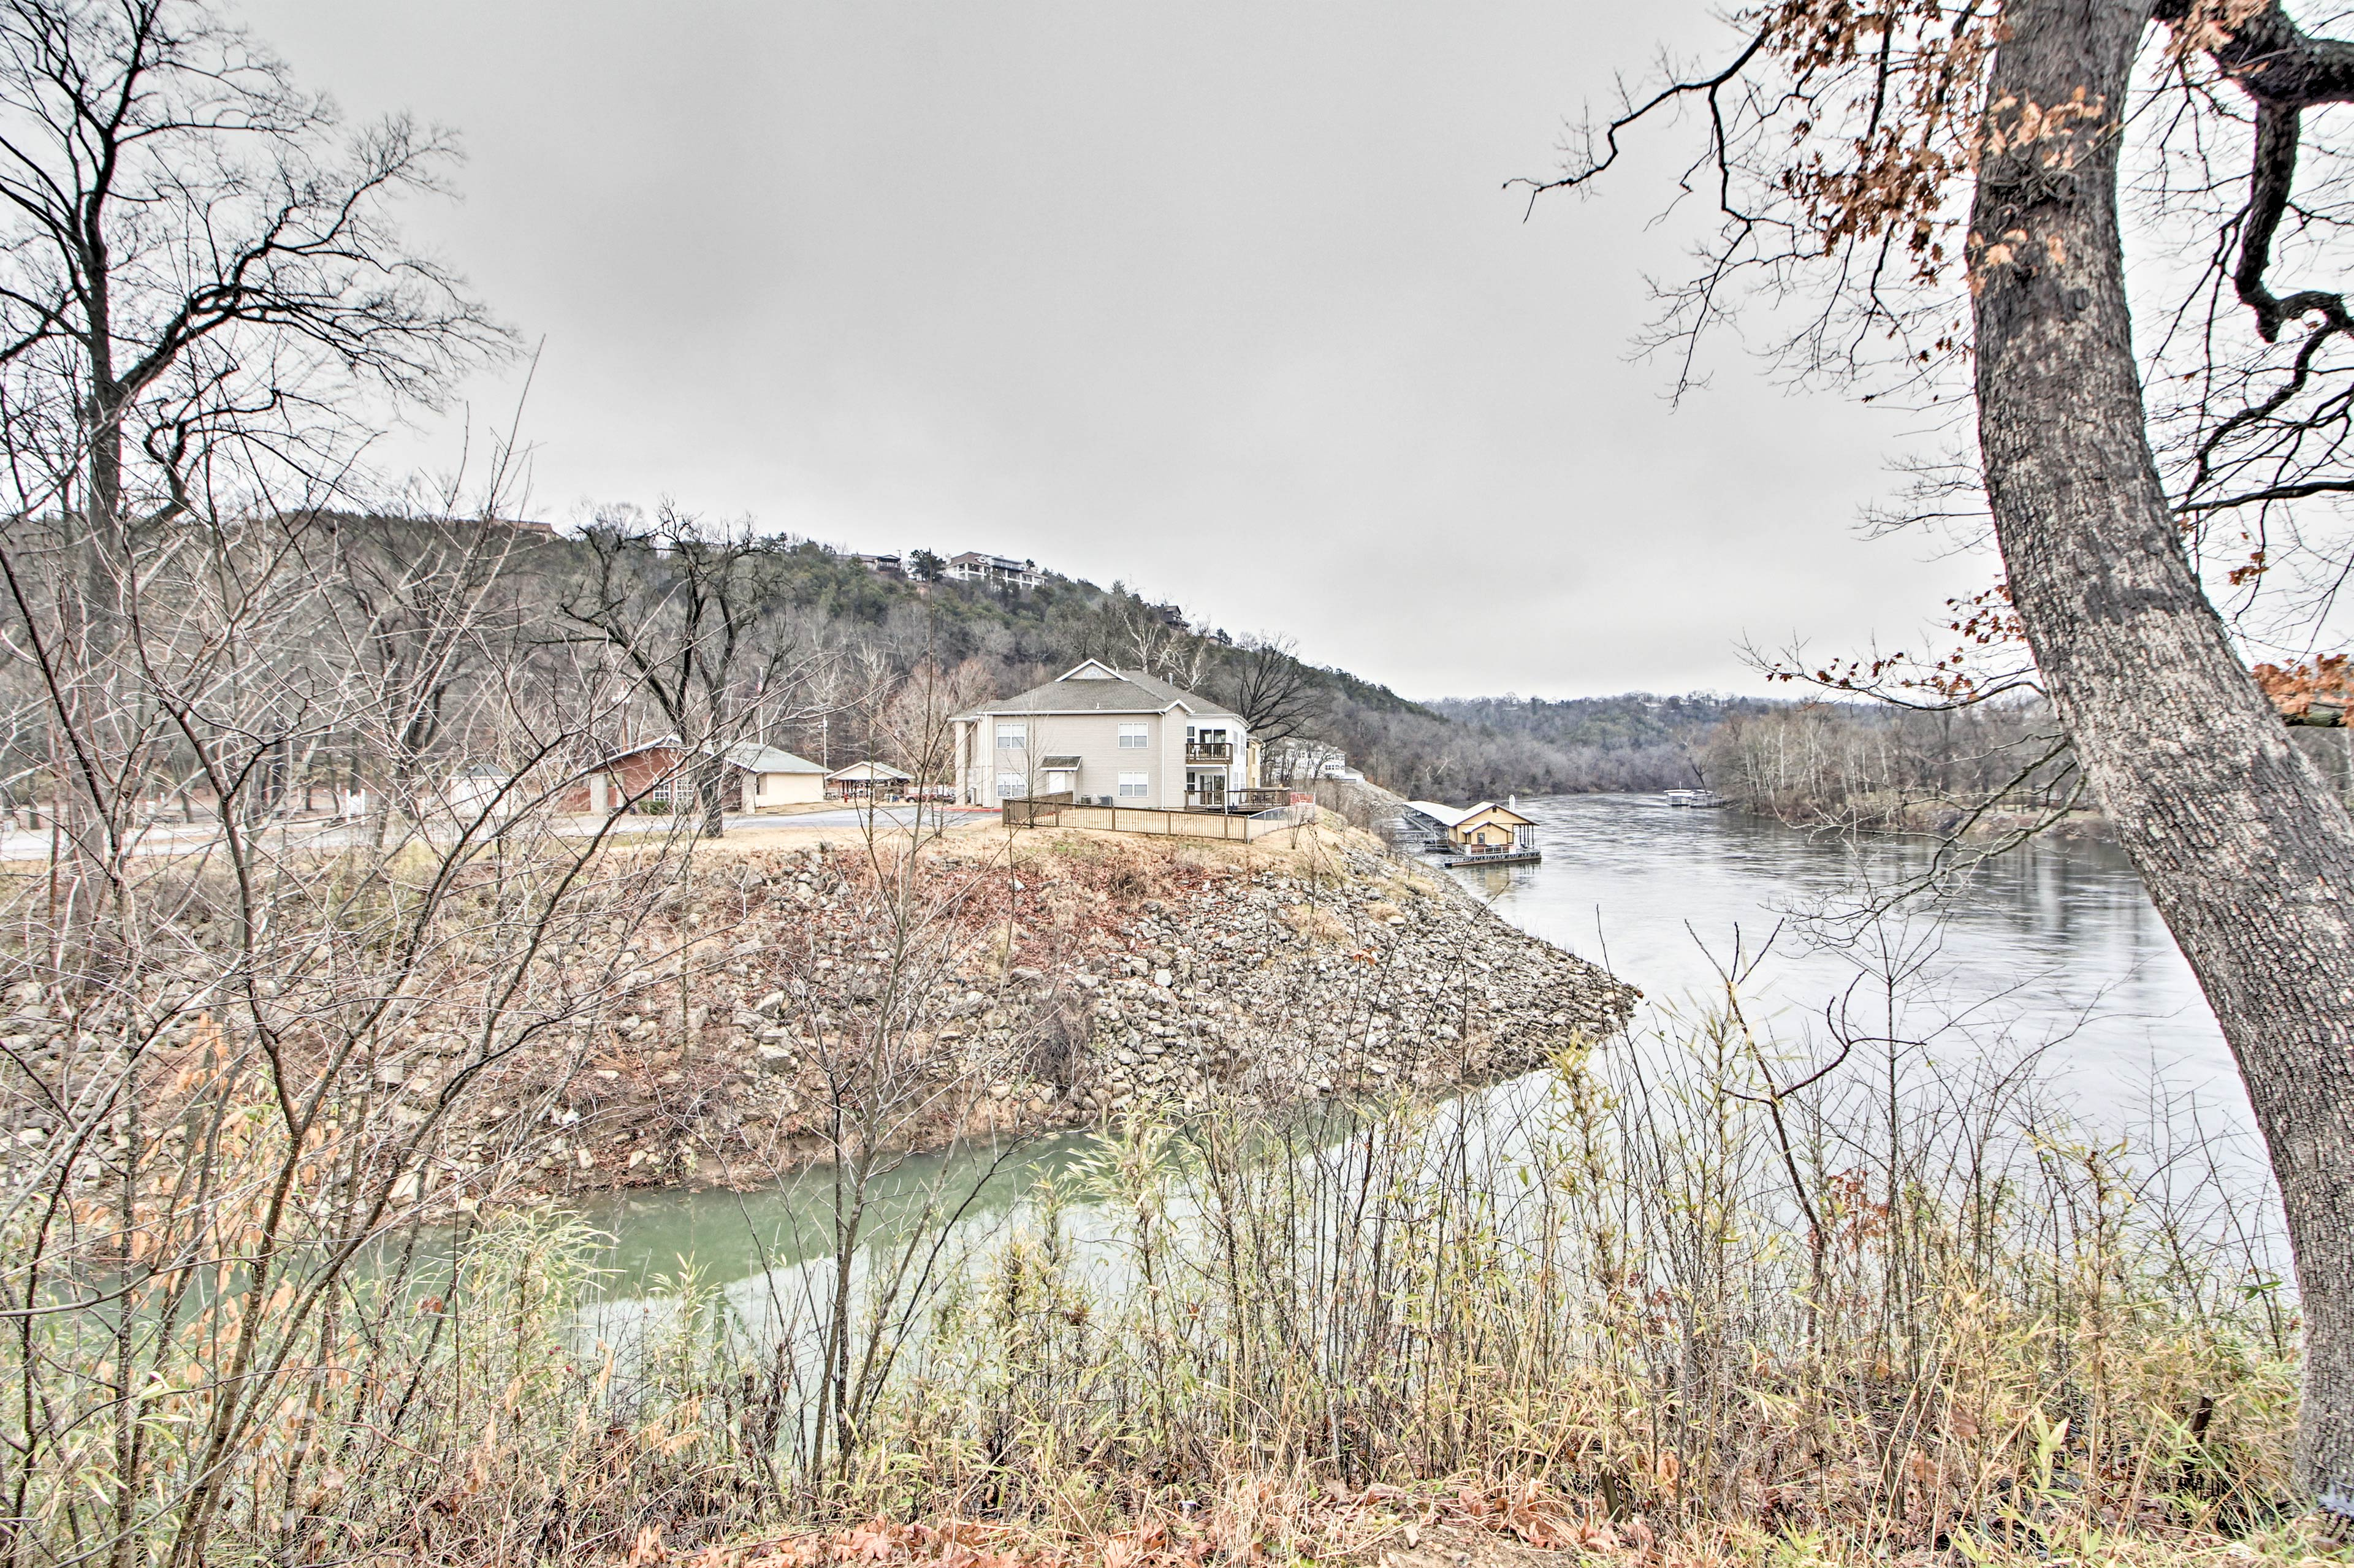 The house is situated right on Lake Taneycomo.